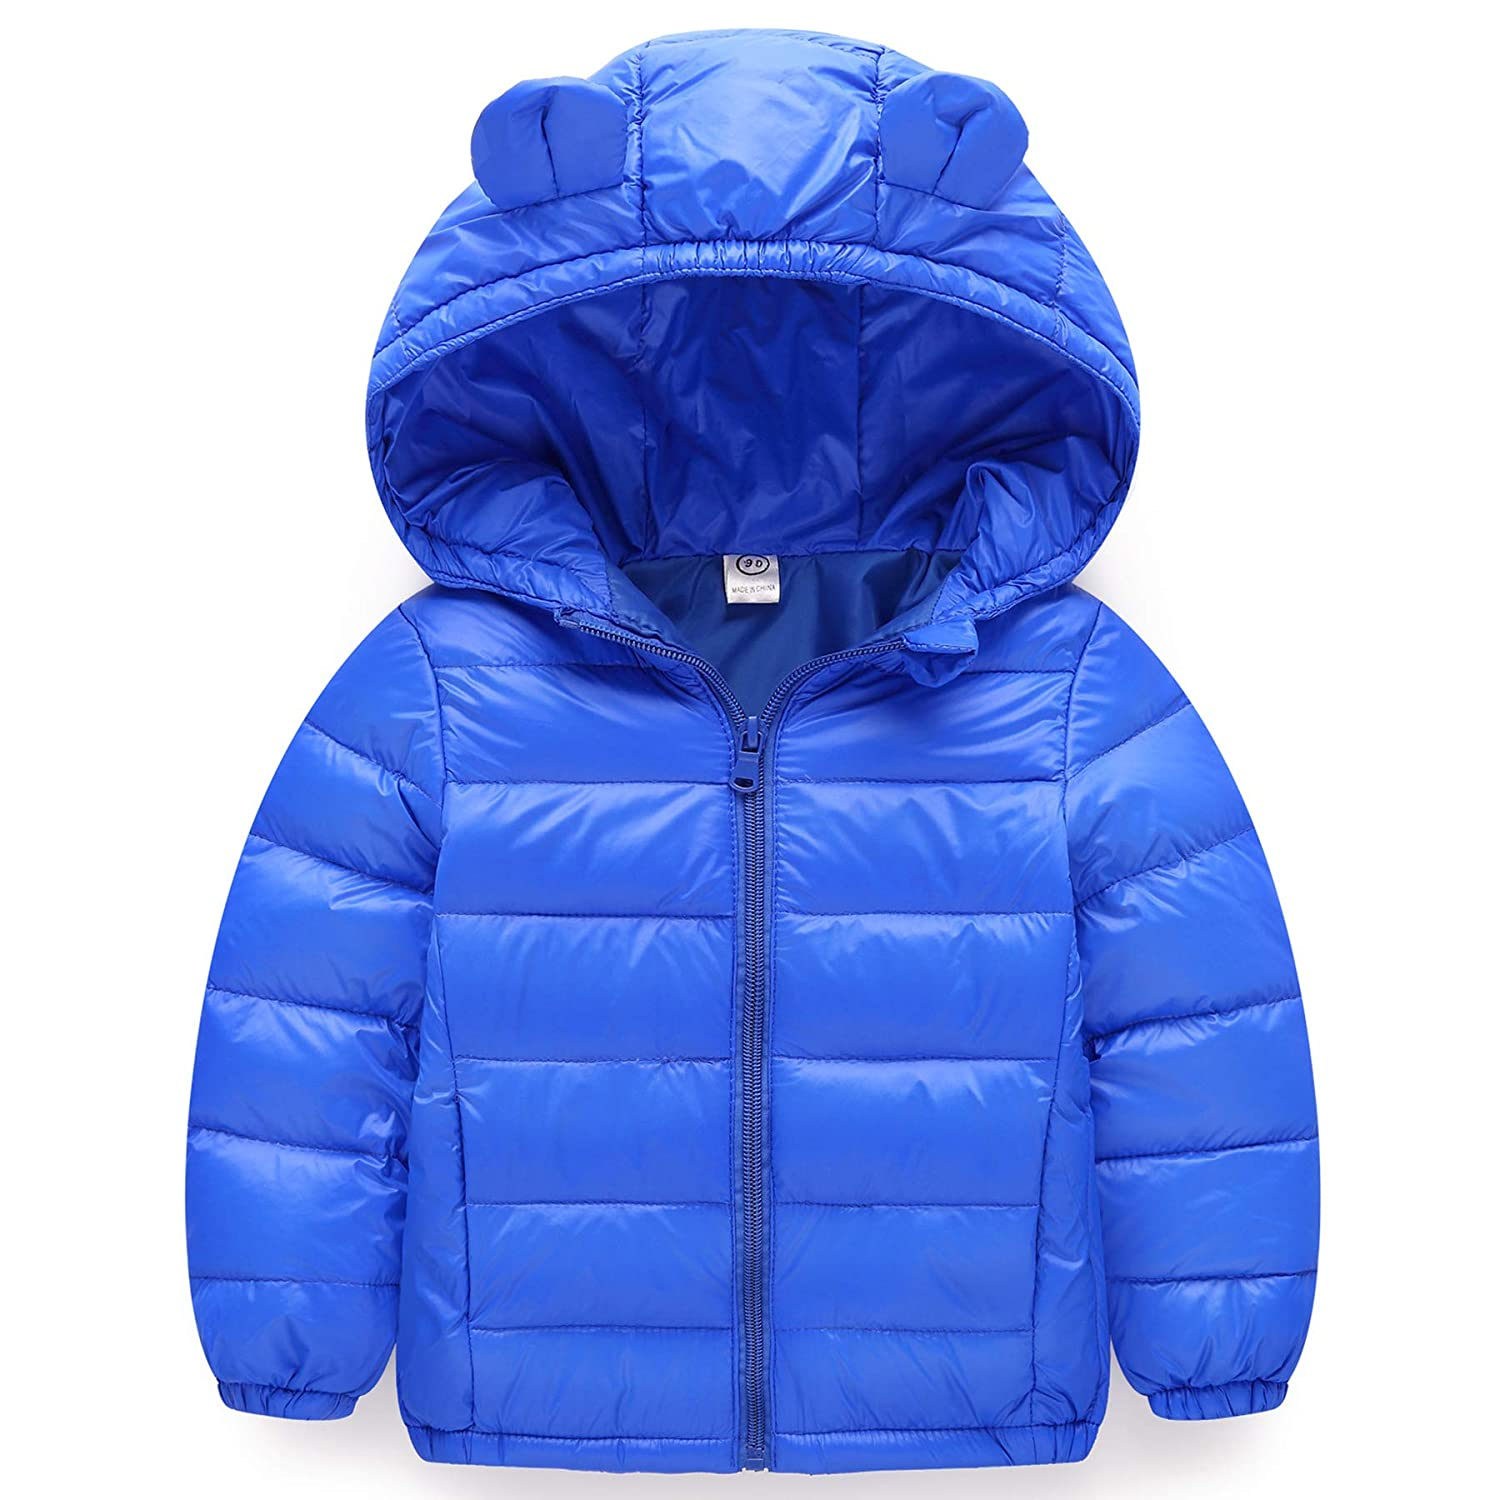 Kids Baby Hooded Down Max 79% OFF Jacket Lowest price challenge Winter Padded Coat Puffer Outerwear